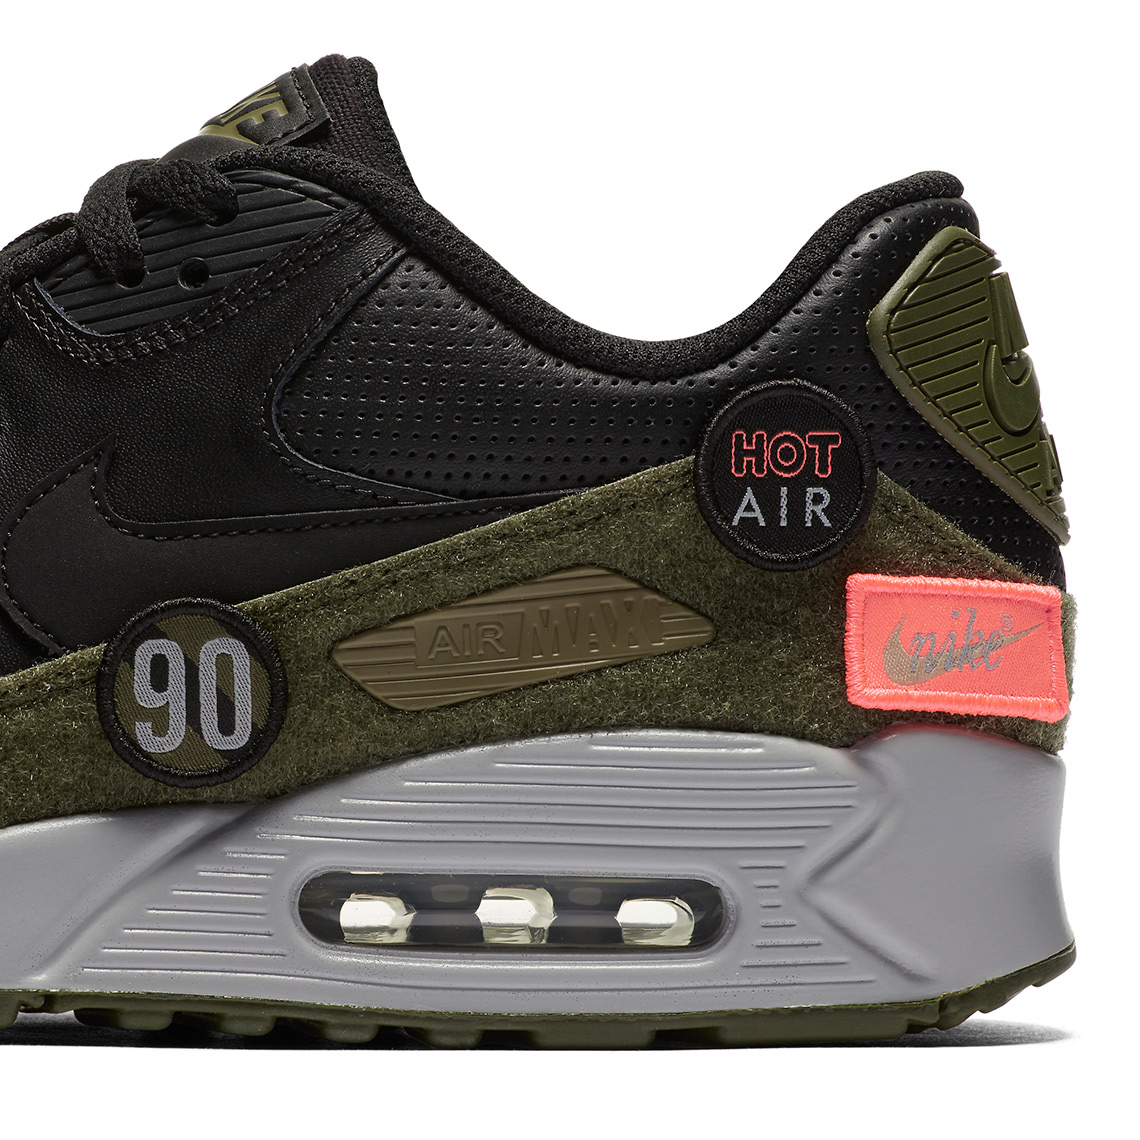 low priced 4ed7a ae7c6 A Look at the Nike Air Max 'Hot Air' Pack - WearTesters